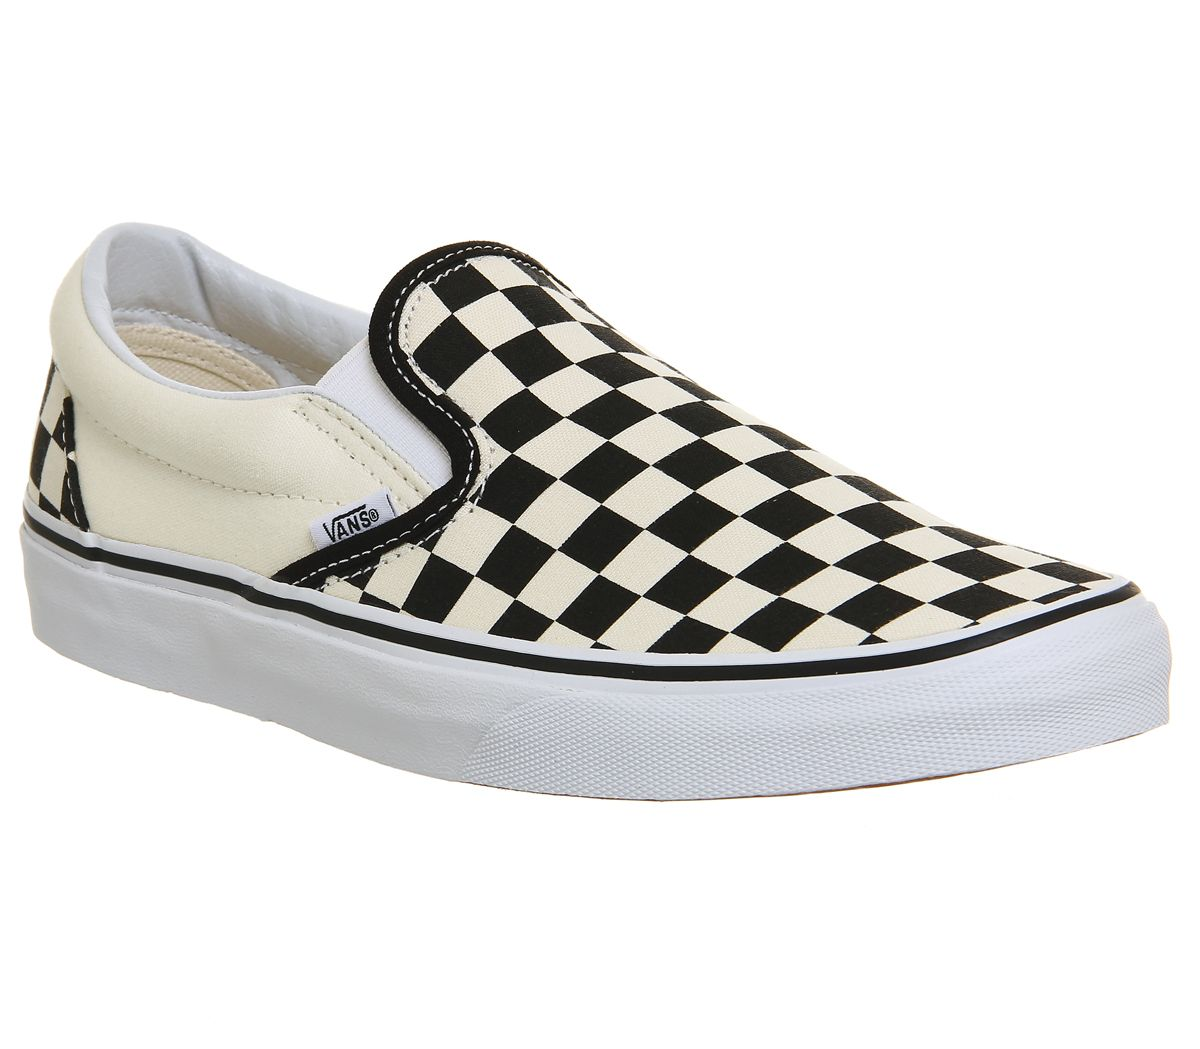 0a193808fd Vans Classic Slip On Trainers Black White Check - Unisex Sports